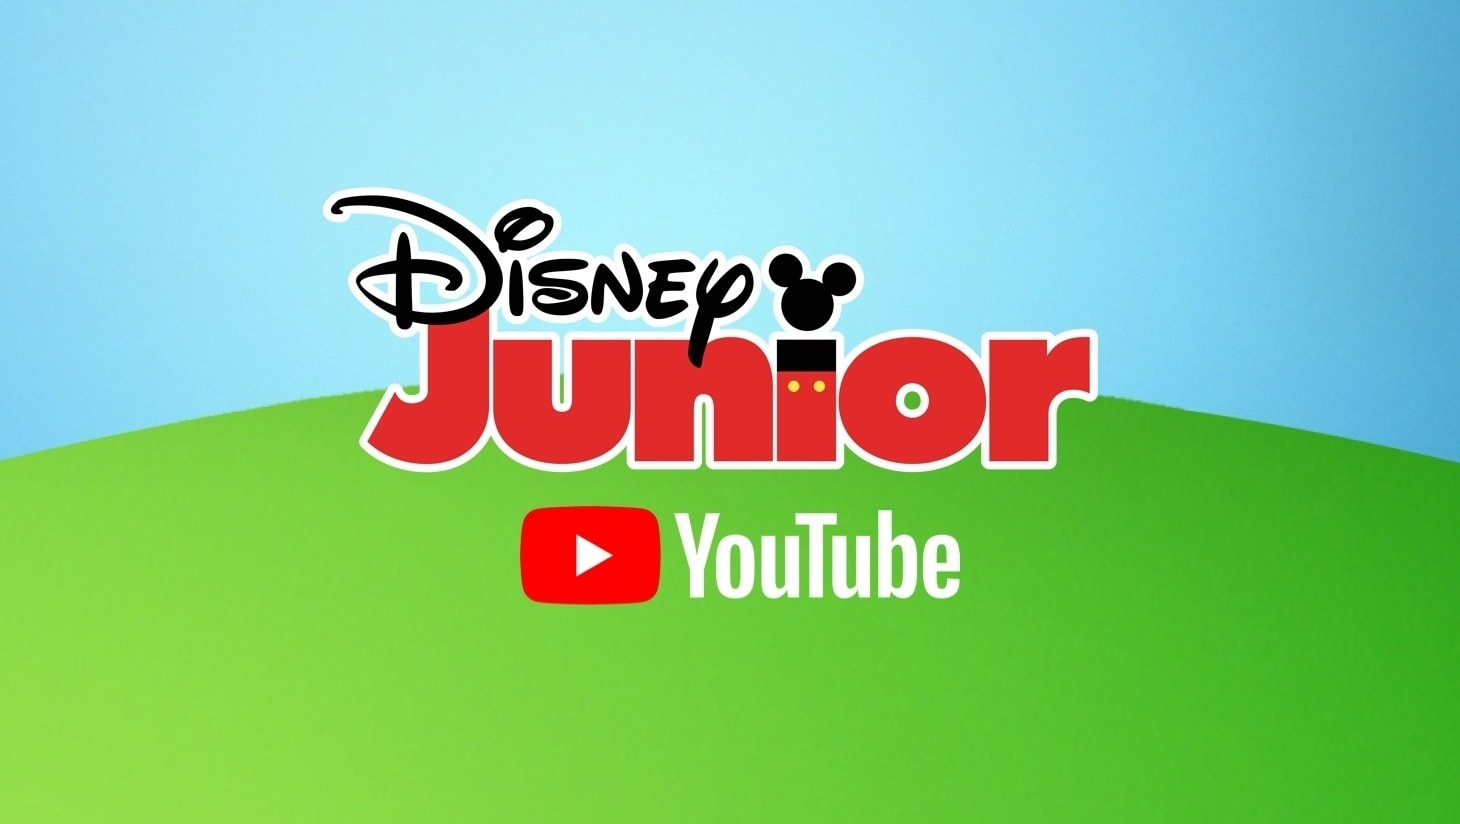 Ver vídeos de Disney Junior en Youtube